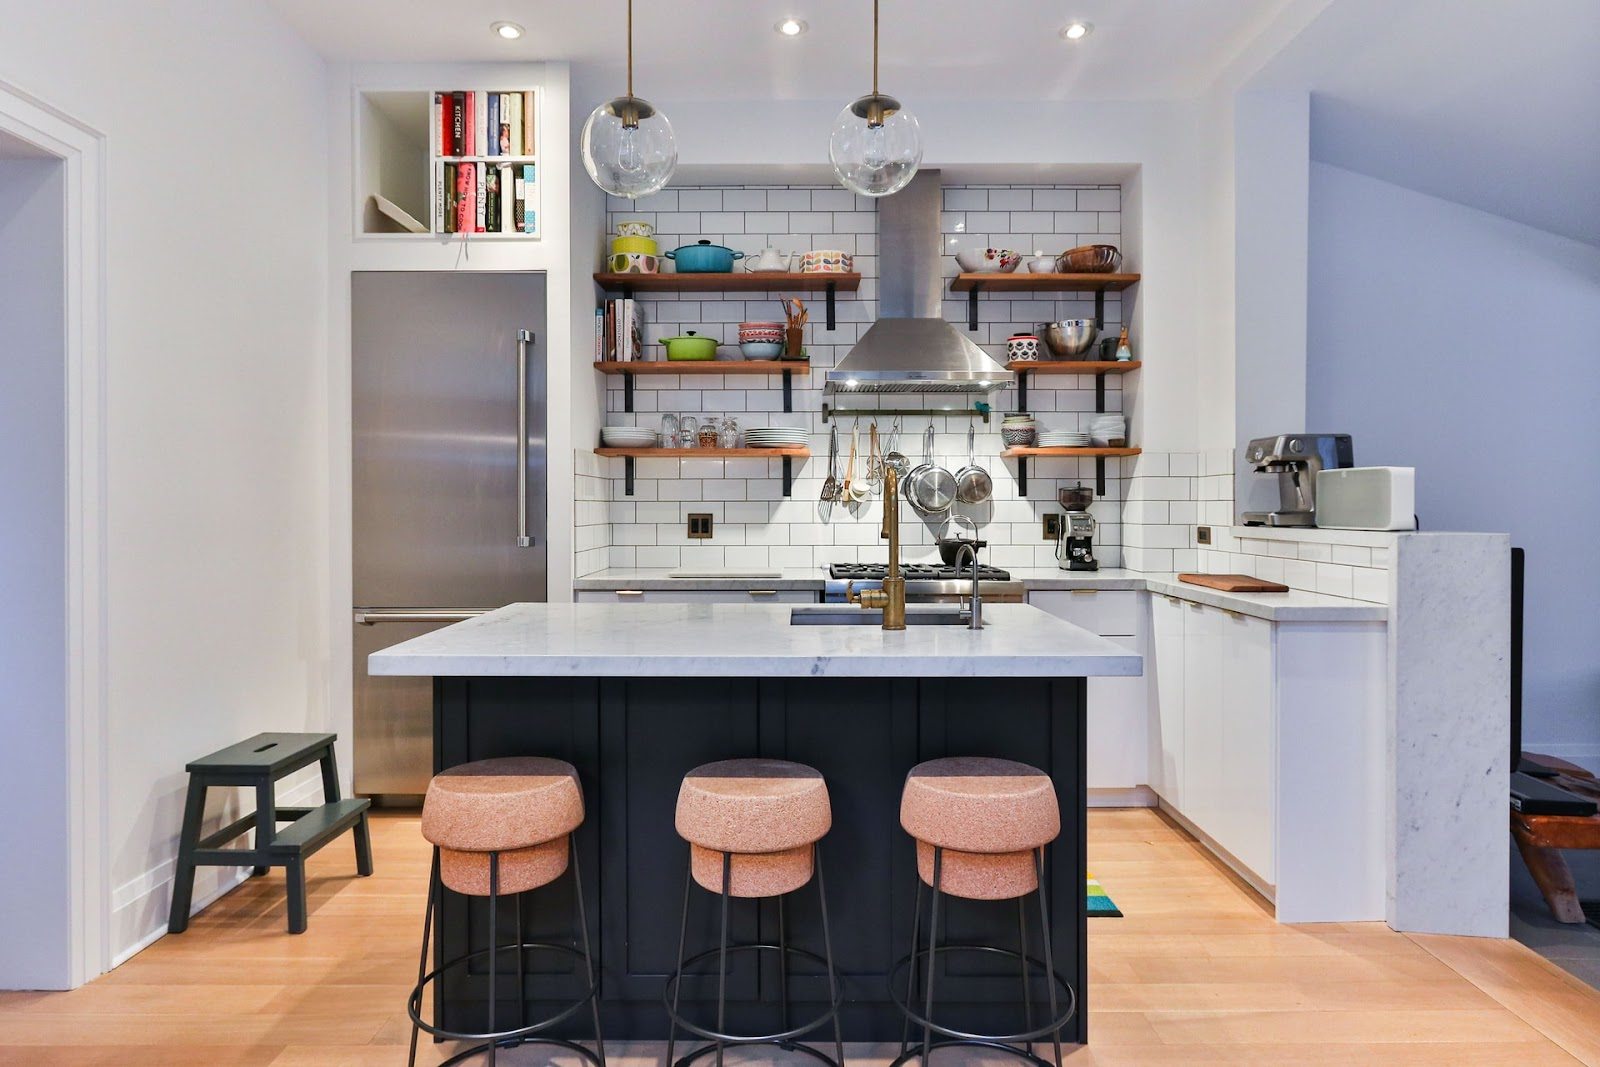 Open-plan kitchen with open shelves, bowls, stovetops, and other utensils in the background